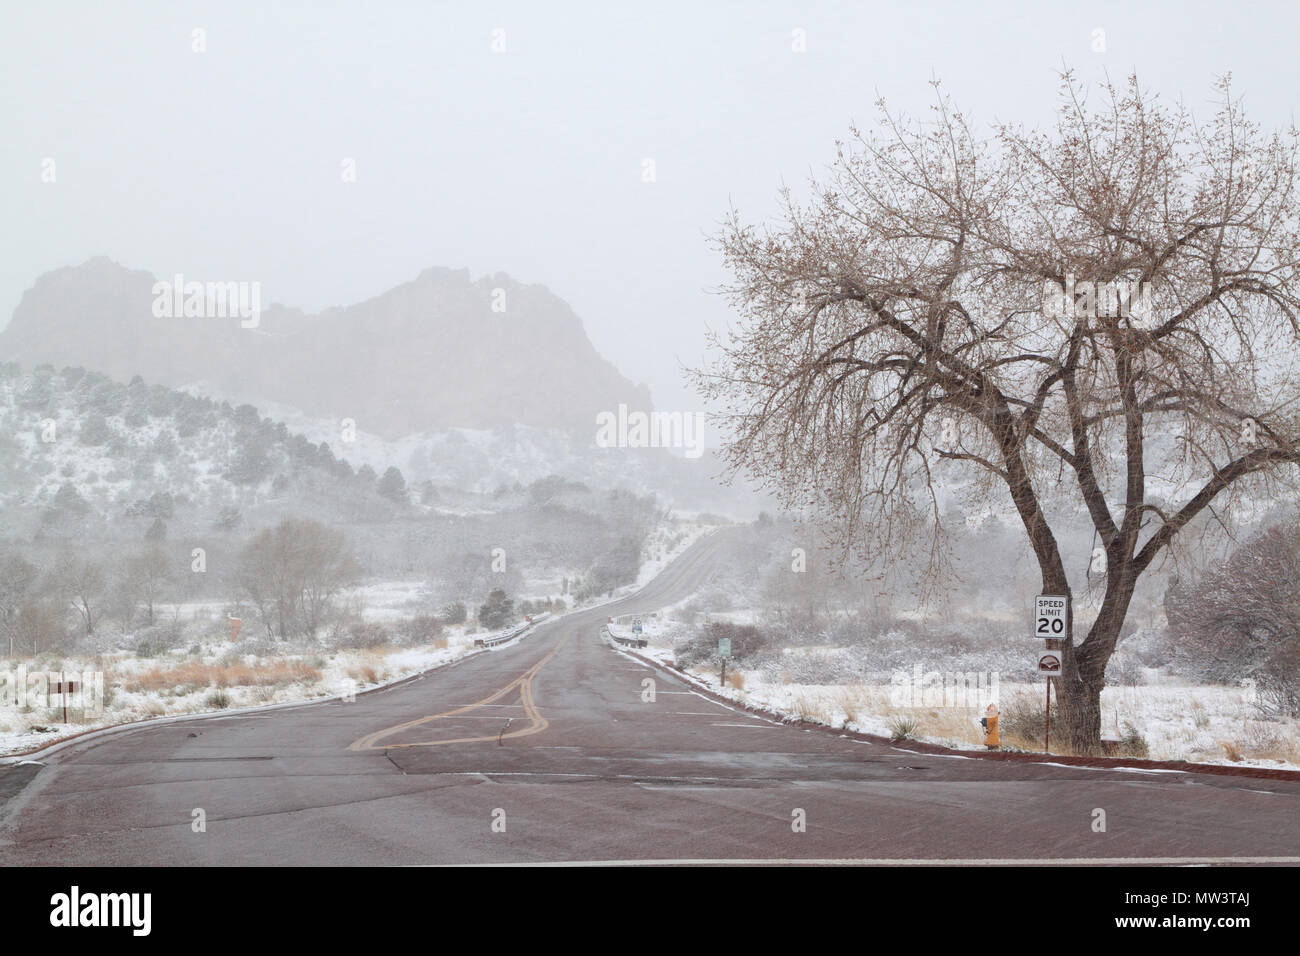 Entrance to Garden of the Gods park during a heavy spring snowstorm - Stock Image